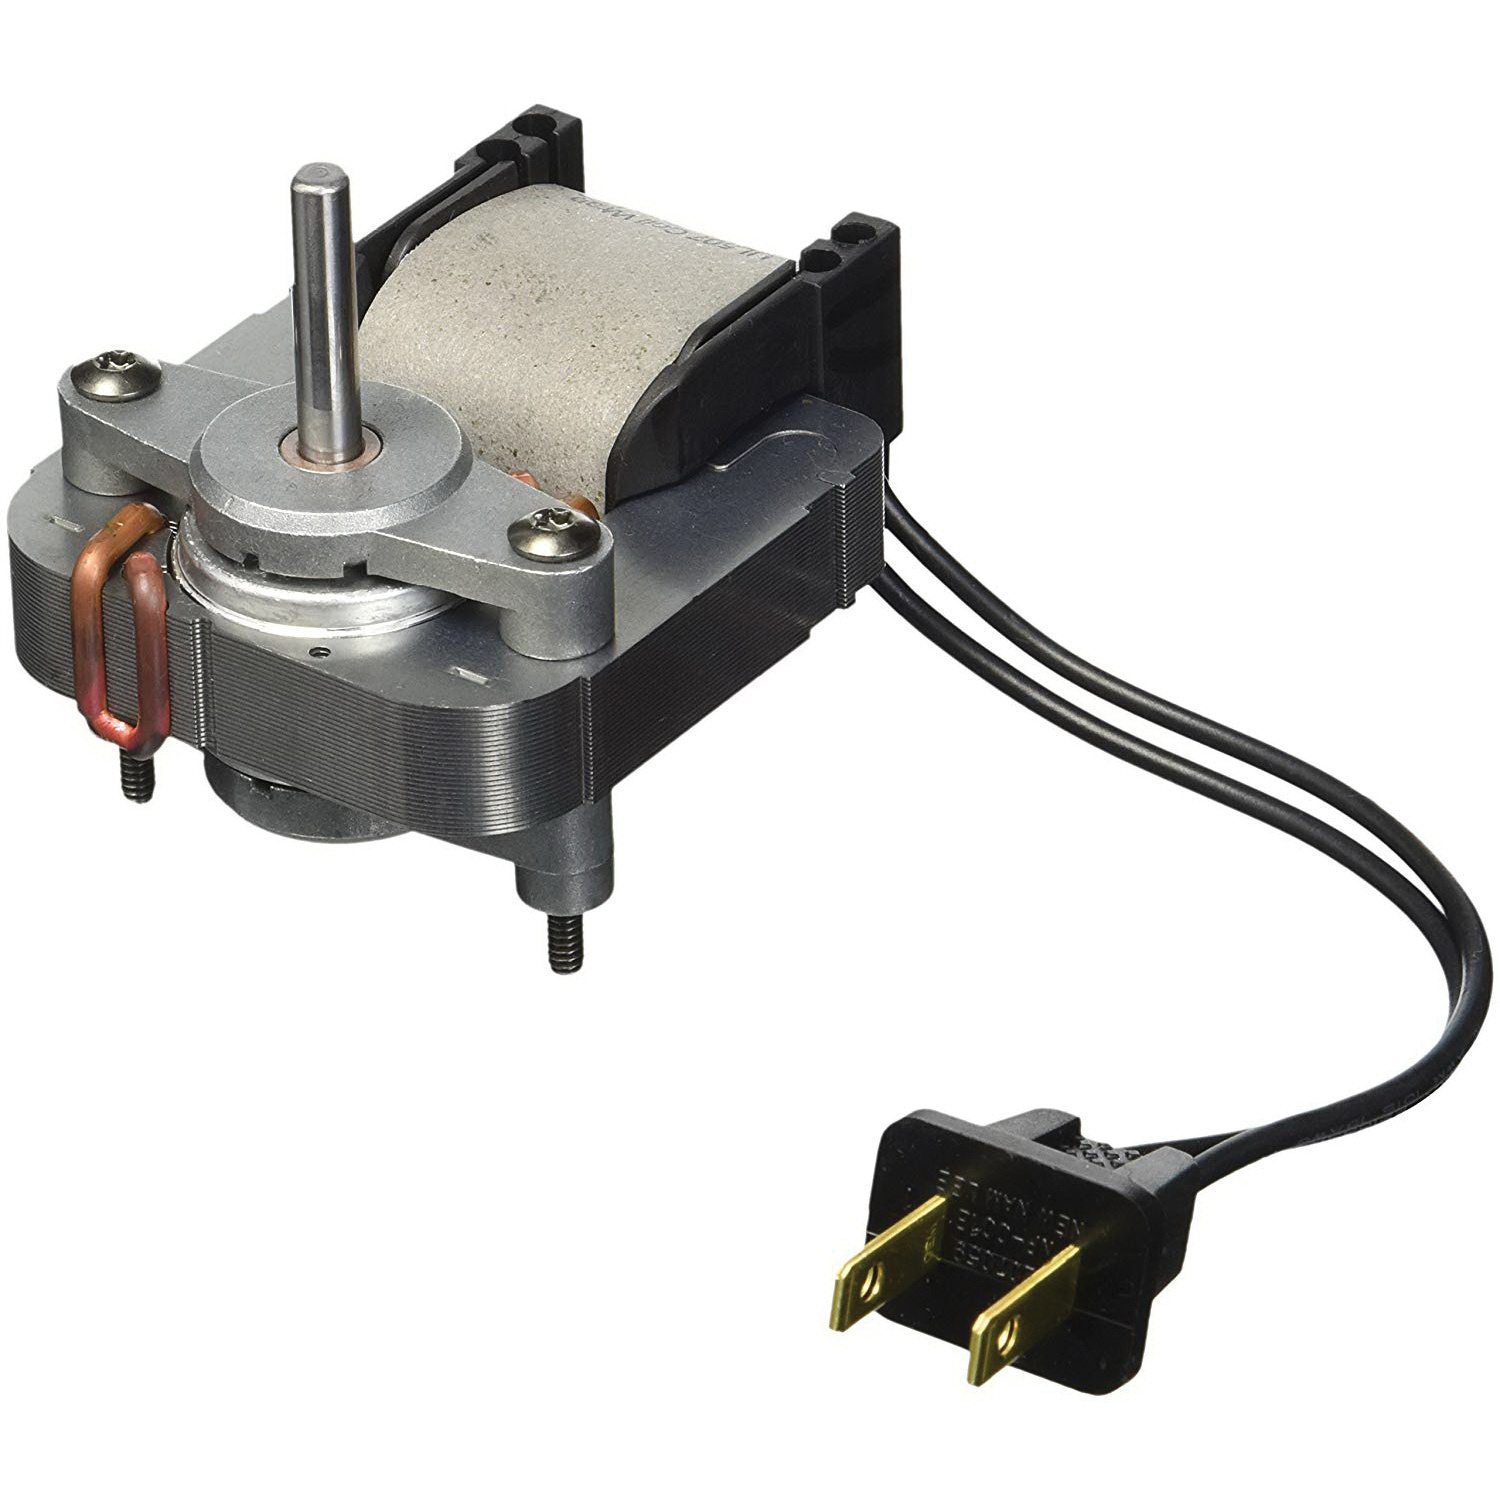 hight resolution of nutone s99080199 c frame fan motor 120 volt ac